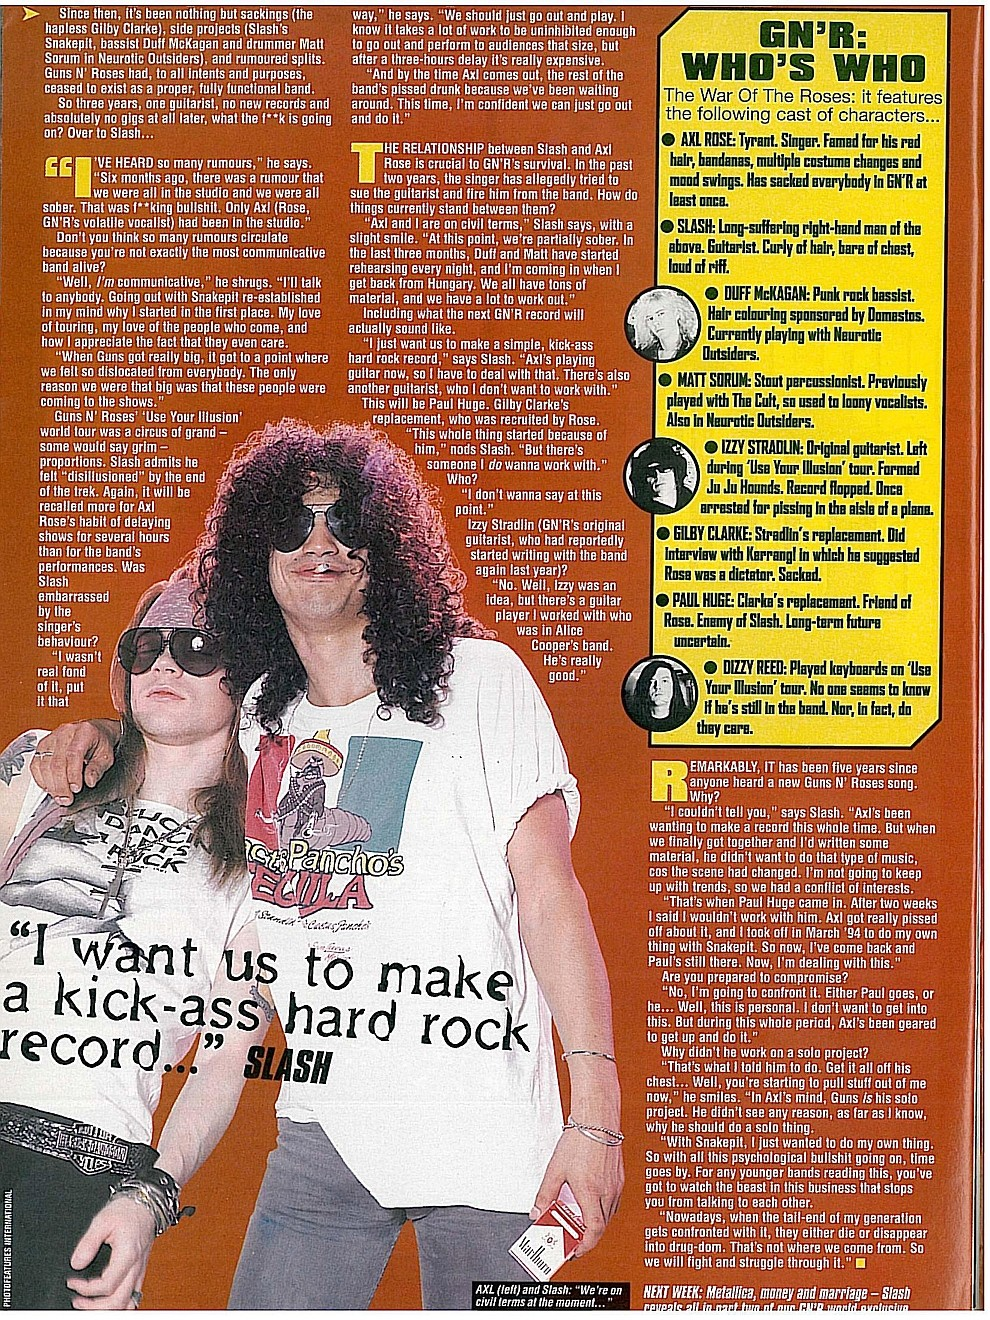 1996.09.14 - Kerrang! - GN'R Lies: The Splits, The Feuds, The Shocking Truth (Slash) 1996_112